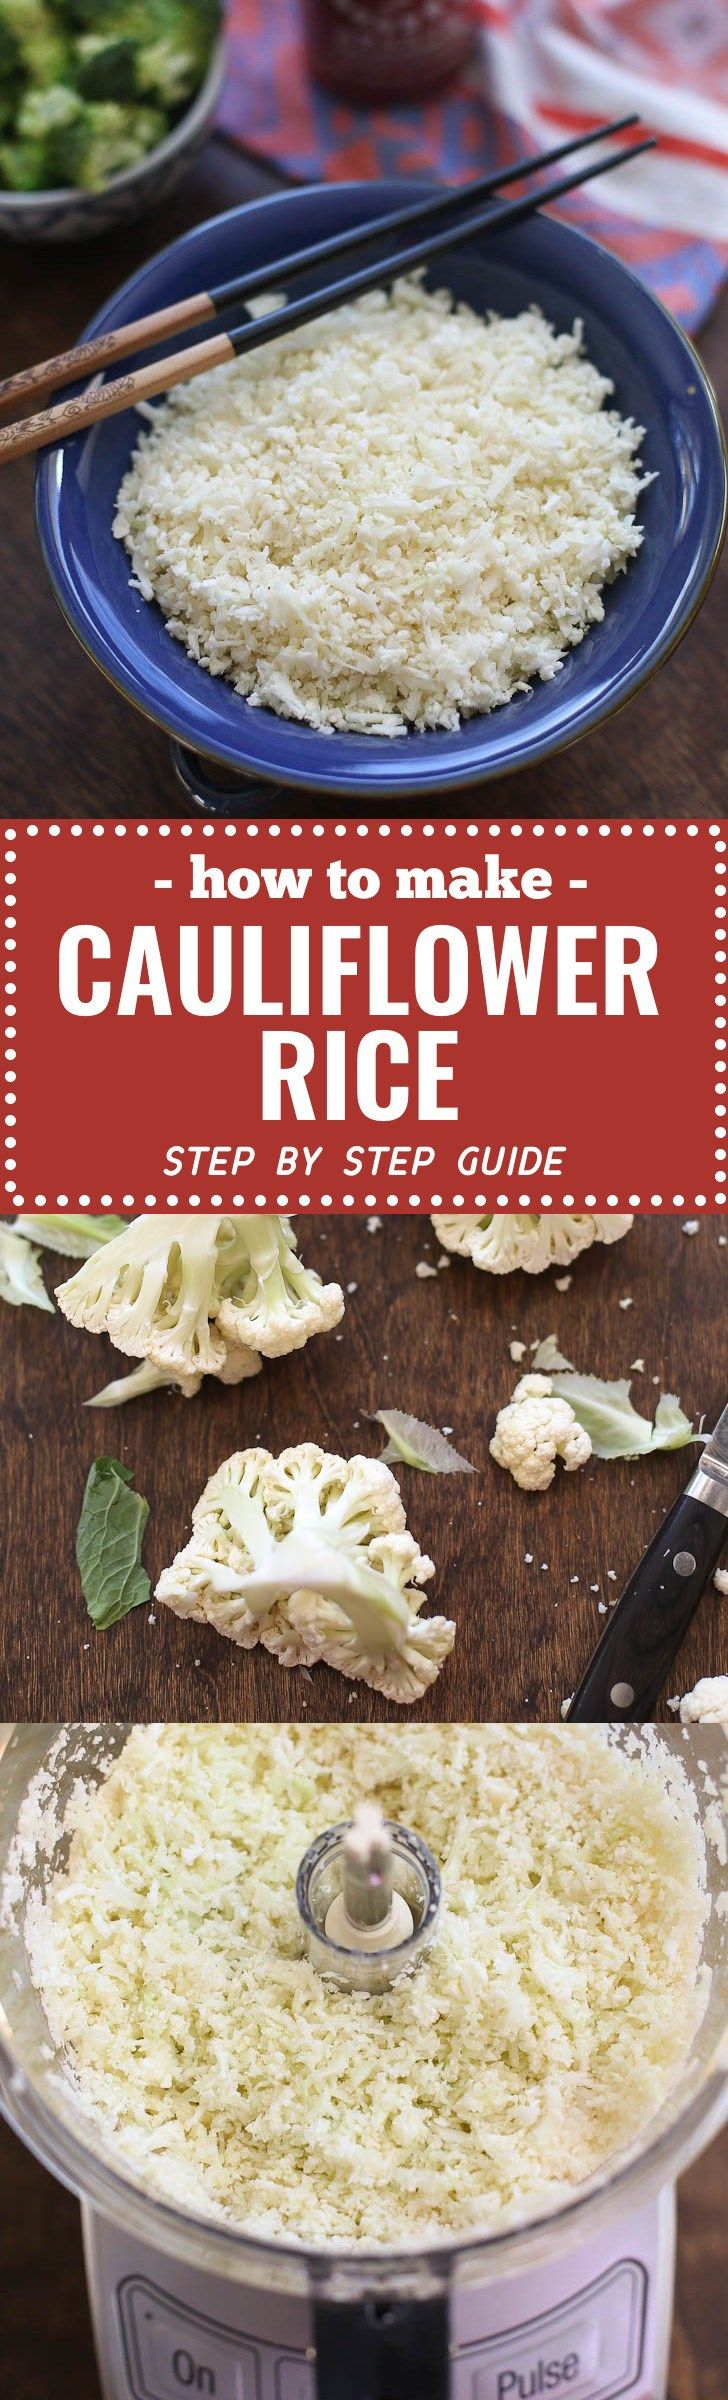 Cauliflower rice is super versatile - a low-carb, gluten-free, paleo and vegan -friendly substitute for rice that is also totally delicious. This is a step by step guide how to make cauliflower rice at home with pictures and instructions on how to freeze. We serve it with stir-frys, turn it into fried rice, and keep it in the freezer as a quick, healthy side dish.